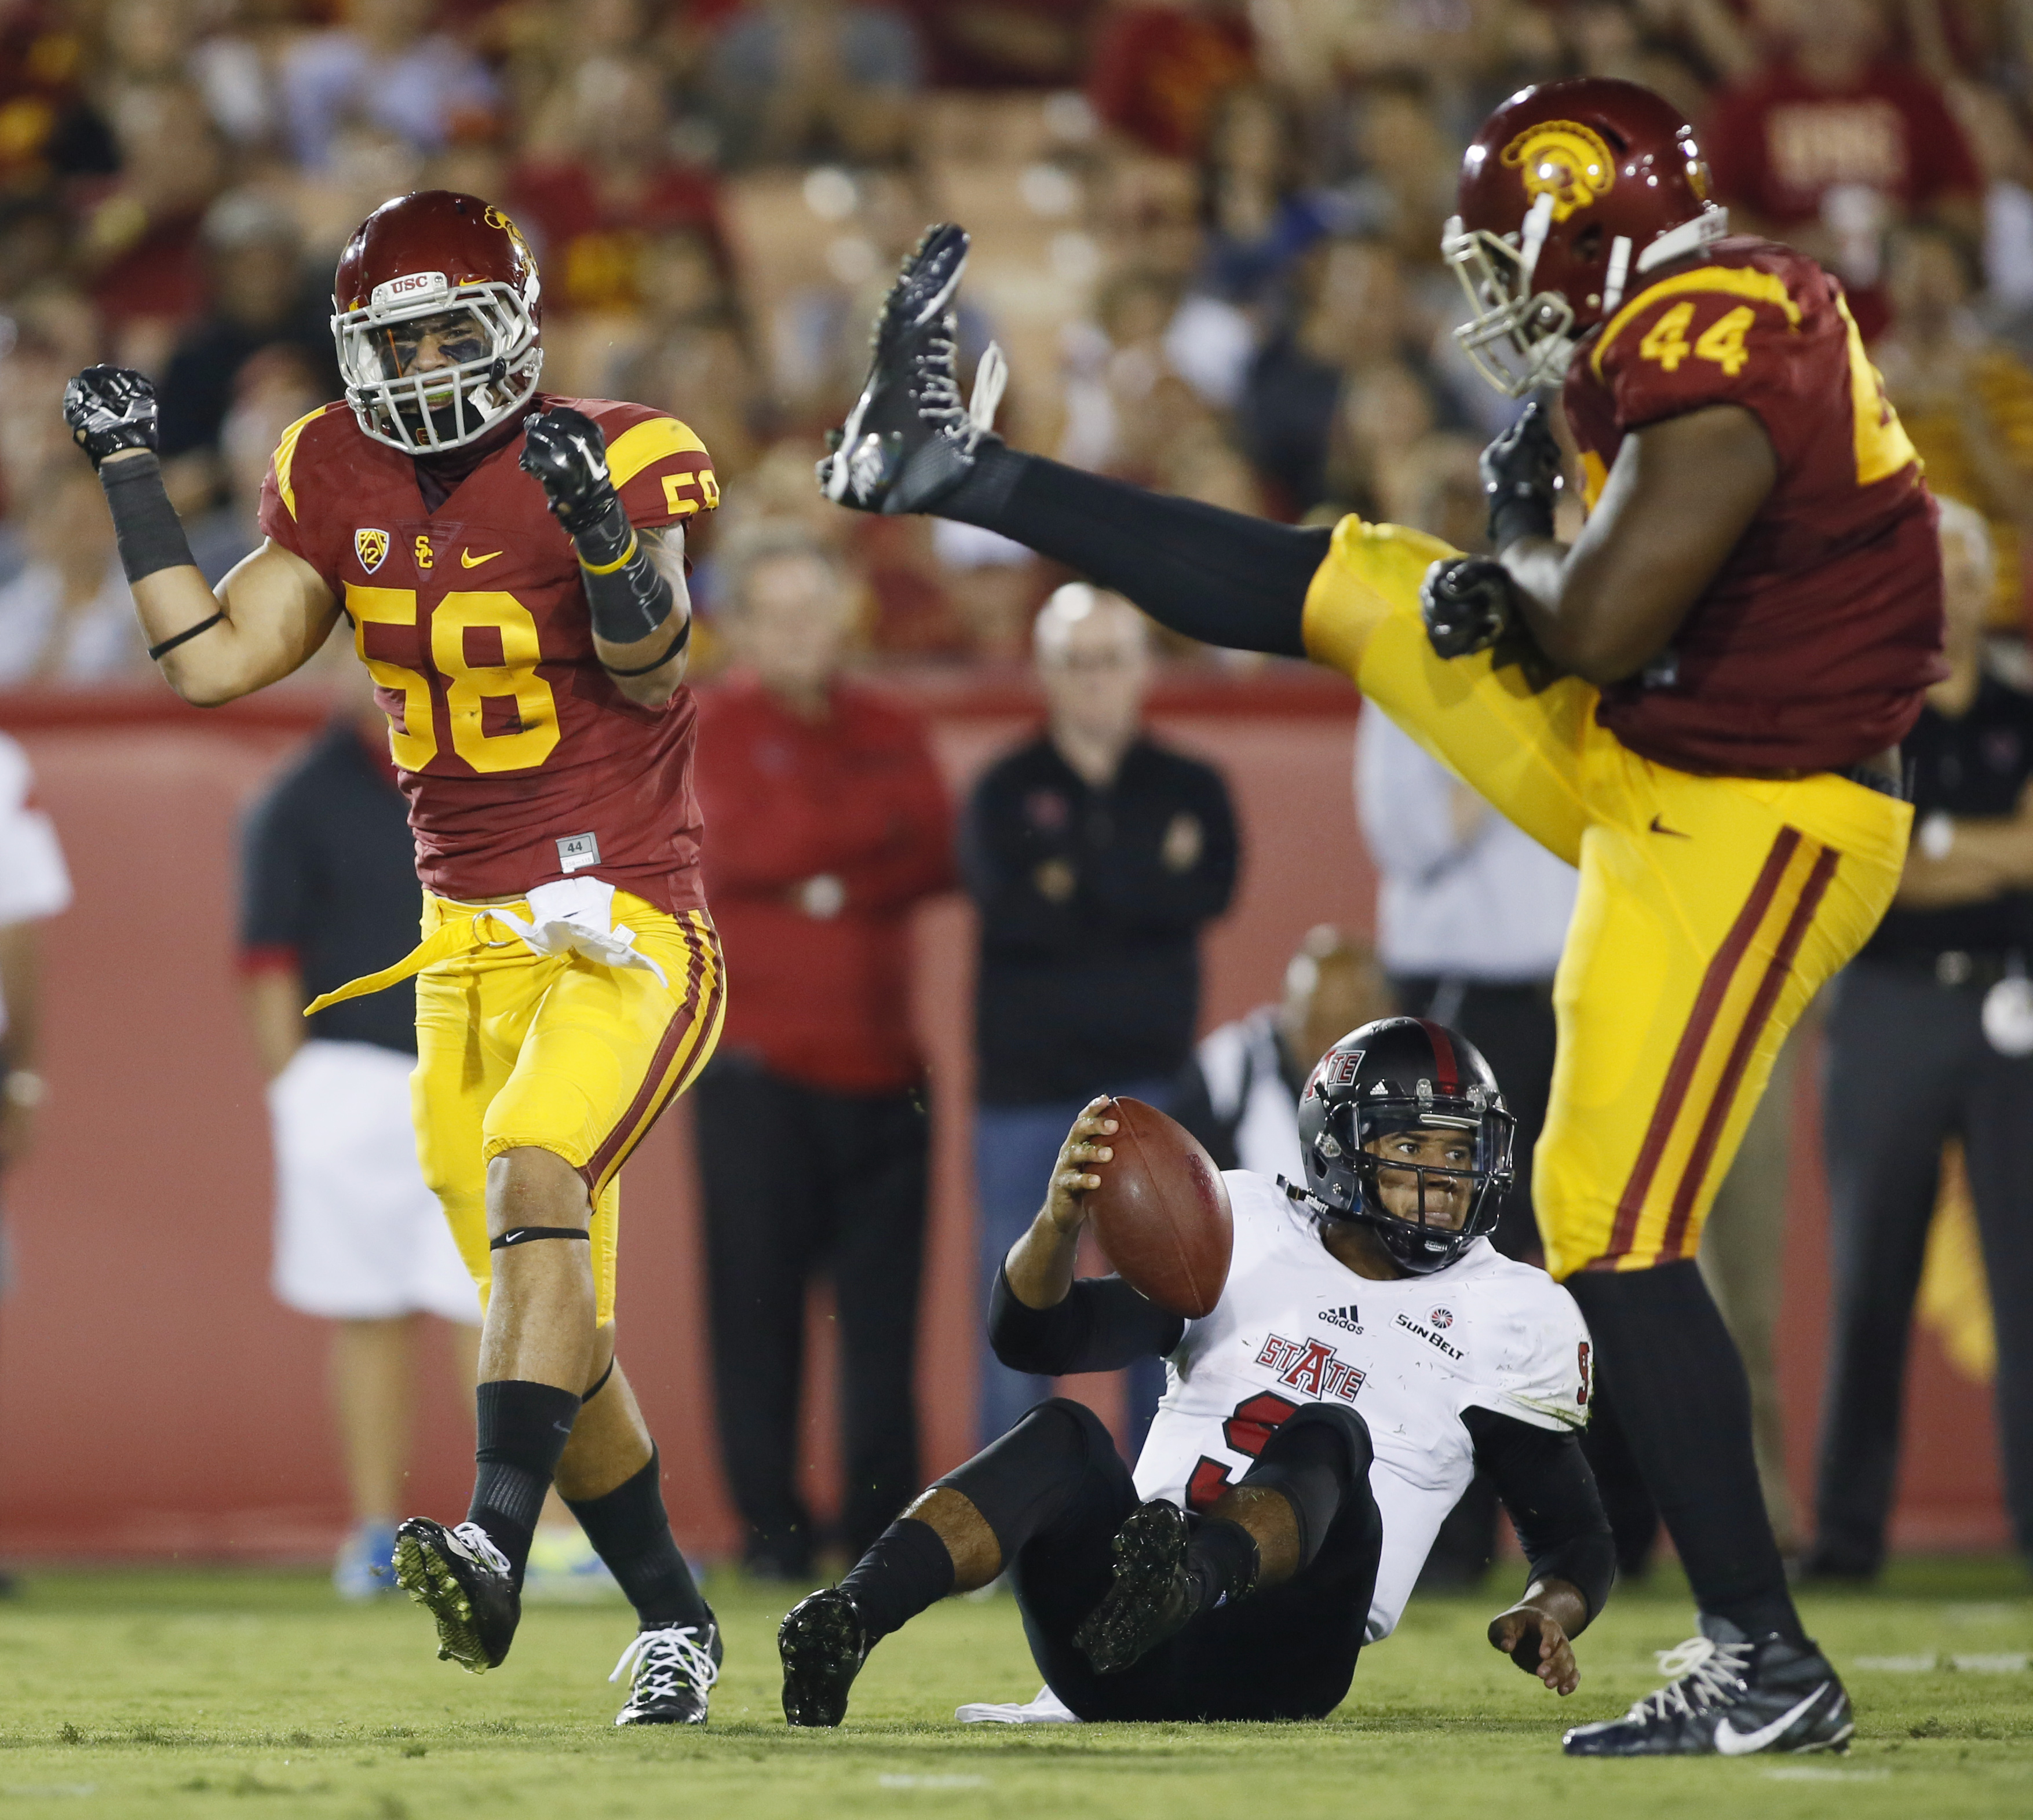 Southern California linebacker Osa Masina, left, celebrates sacking Arkansas State quarterback Fredi Knighten along with teammate Malik Dorton, right, during the first half of an NCAA college football game, Saturday, Sept. 5, 2015, in Los Angeles. (AP Pho